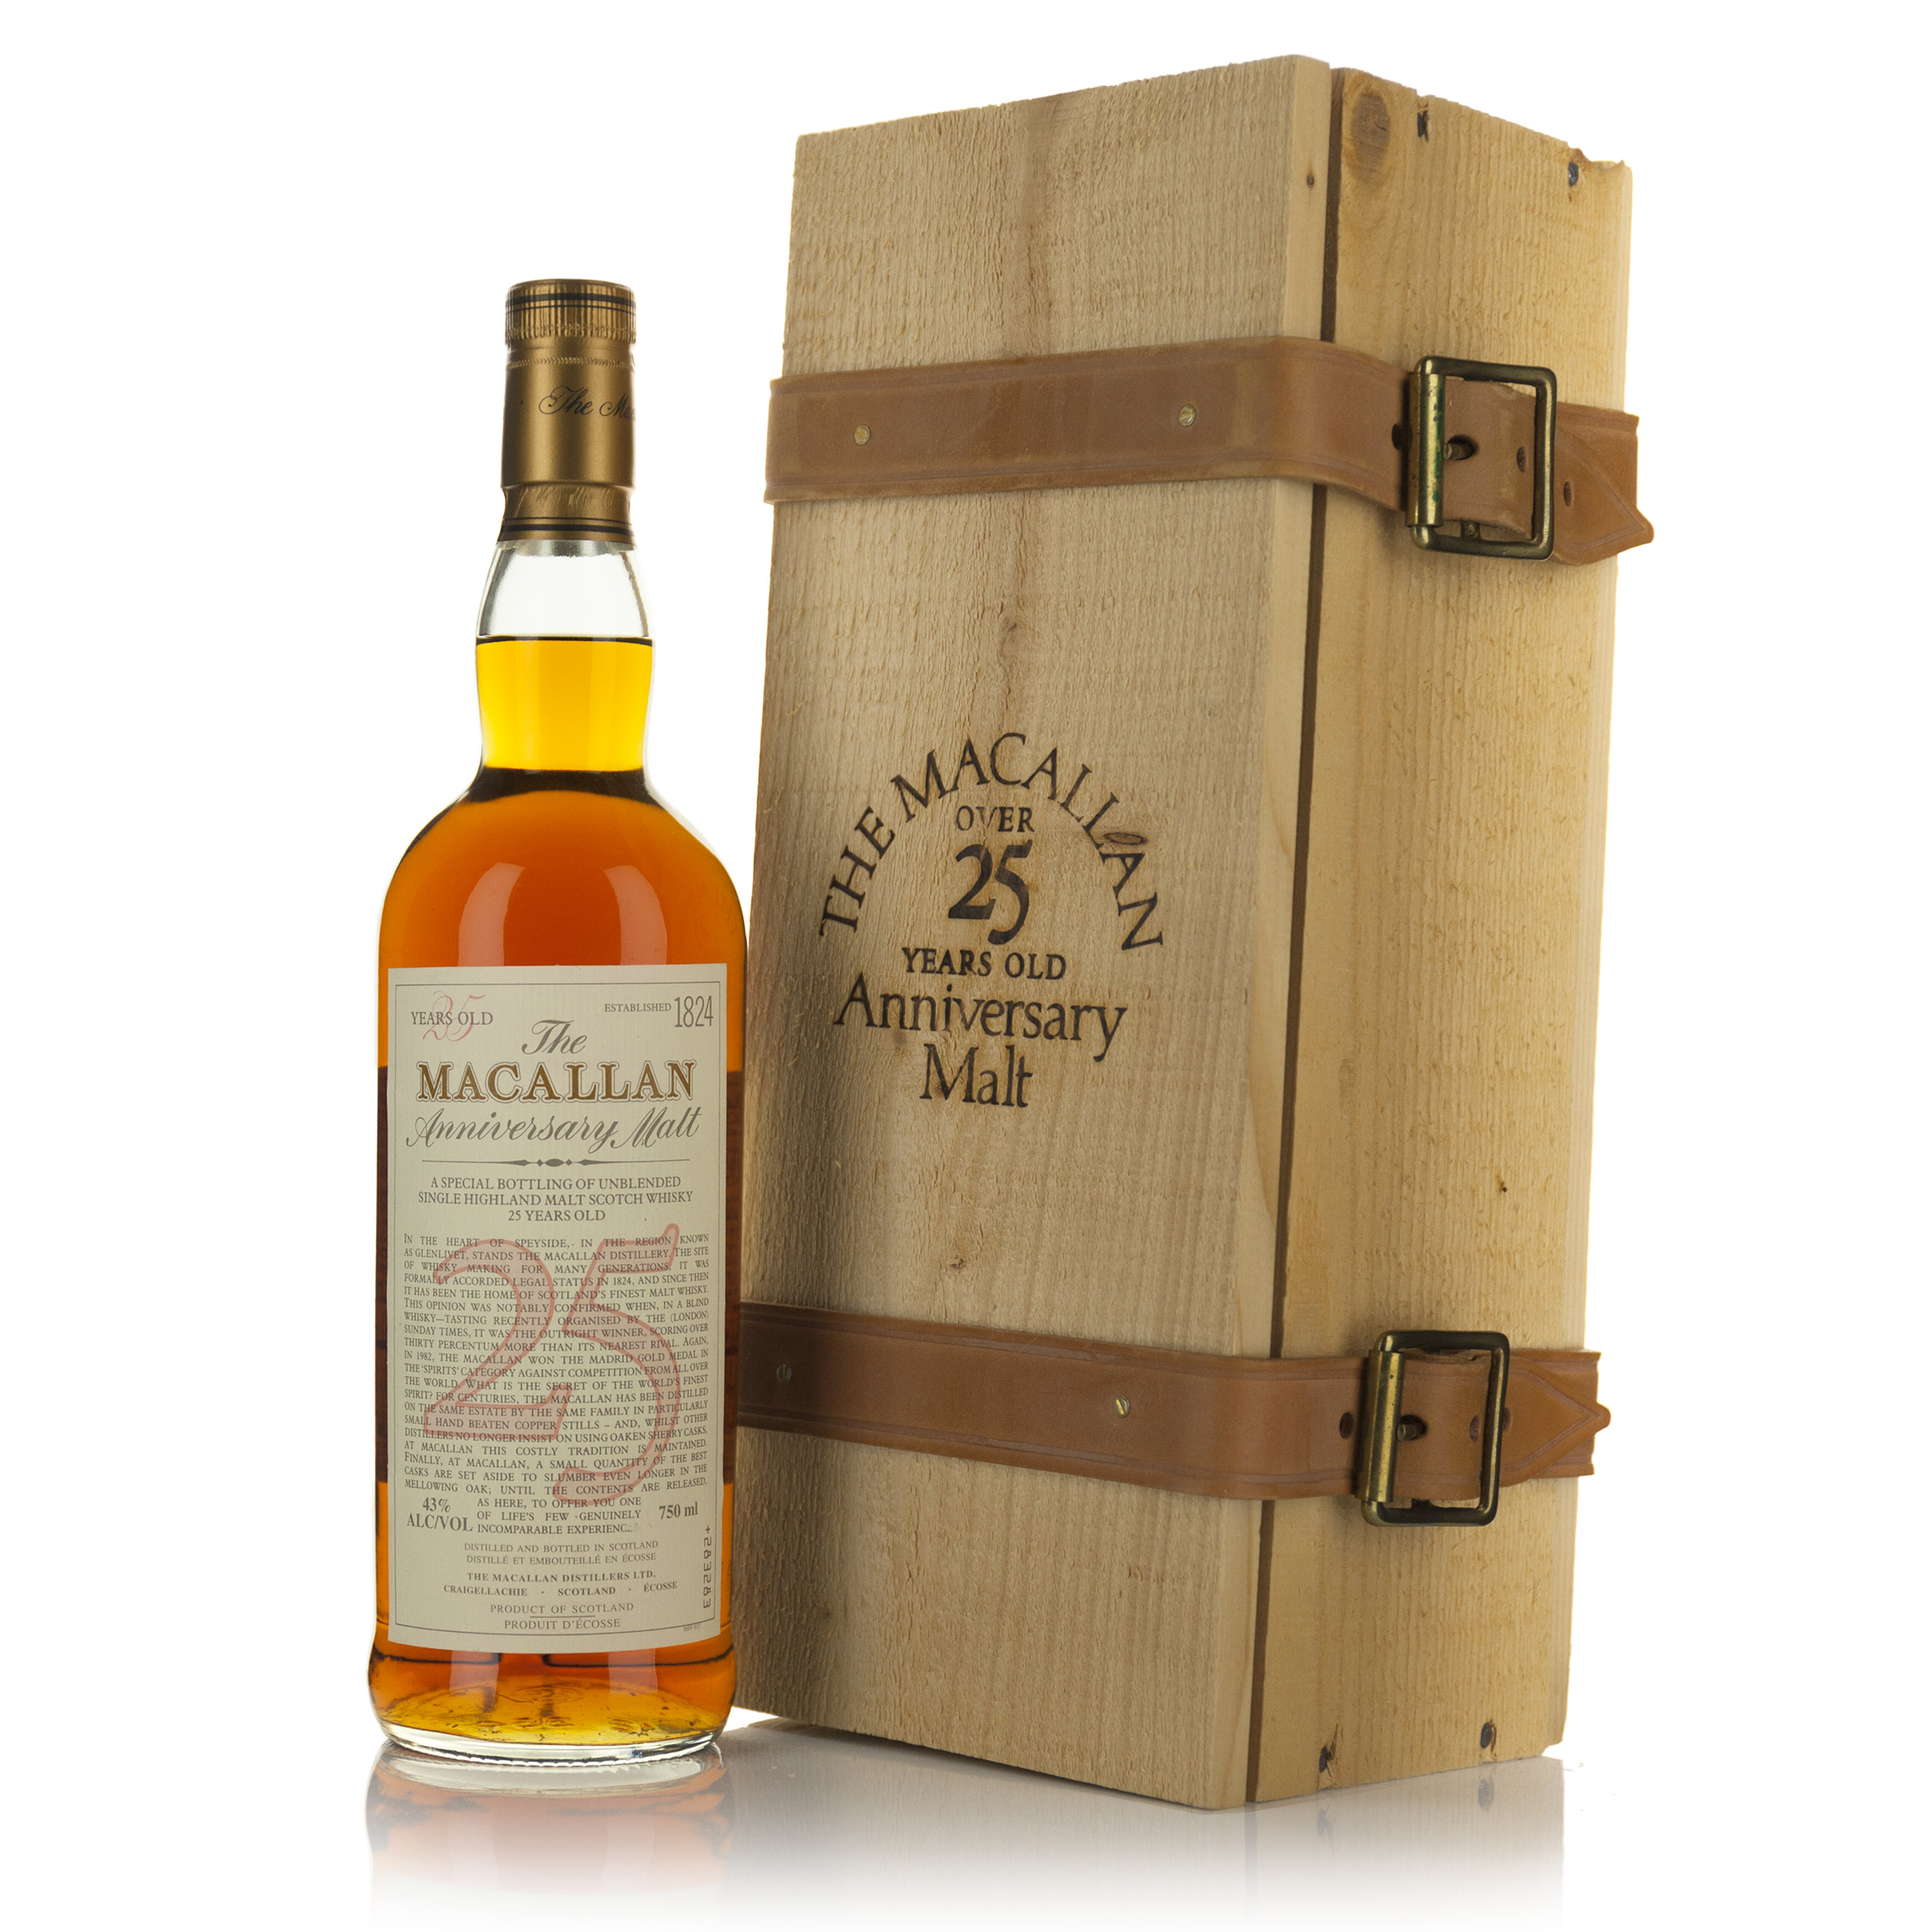 THE MACALLAN 25 ANNIVERSARY SINGLE HIGHLAND MALT SCOTCH WHISKY 25 YEARS (ONE 750 ML)